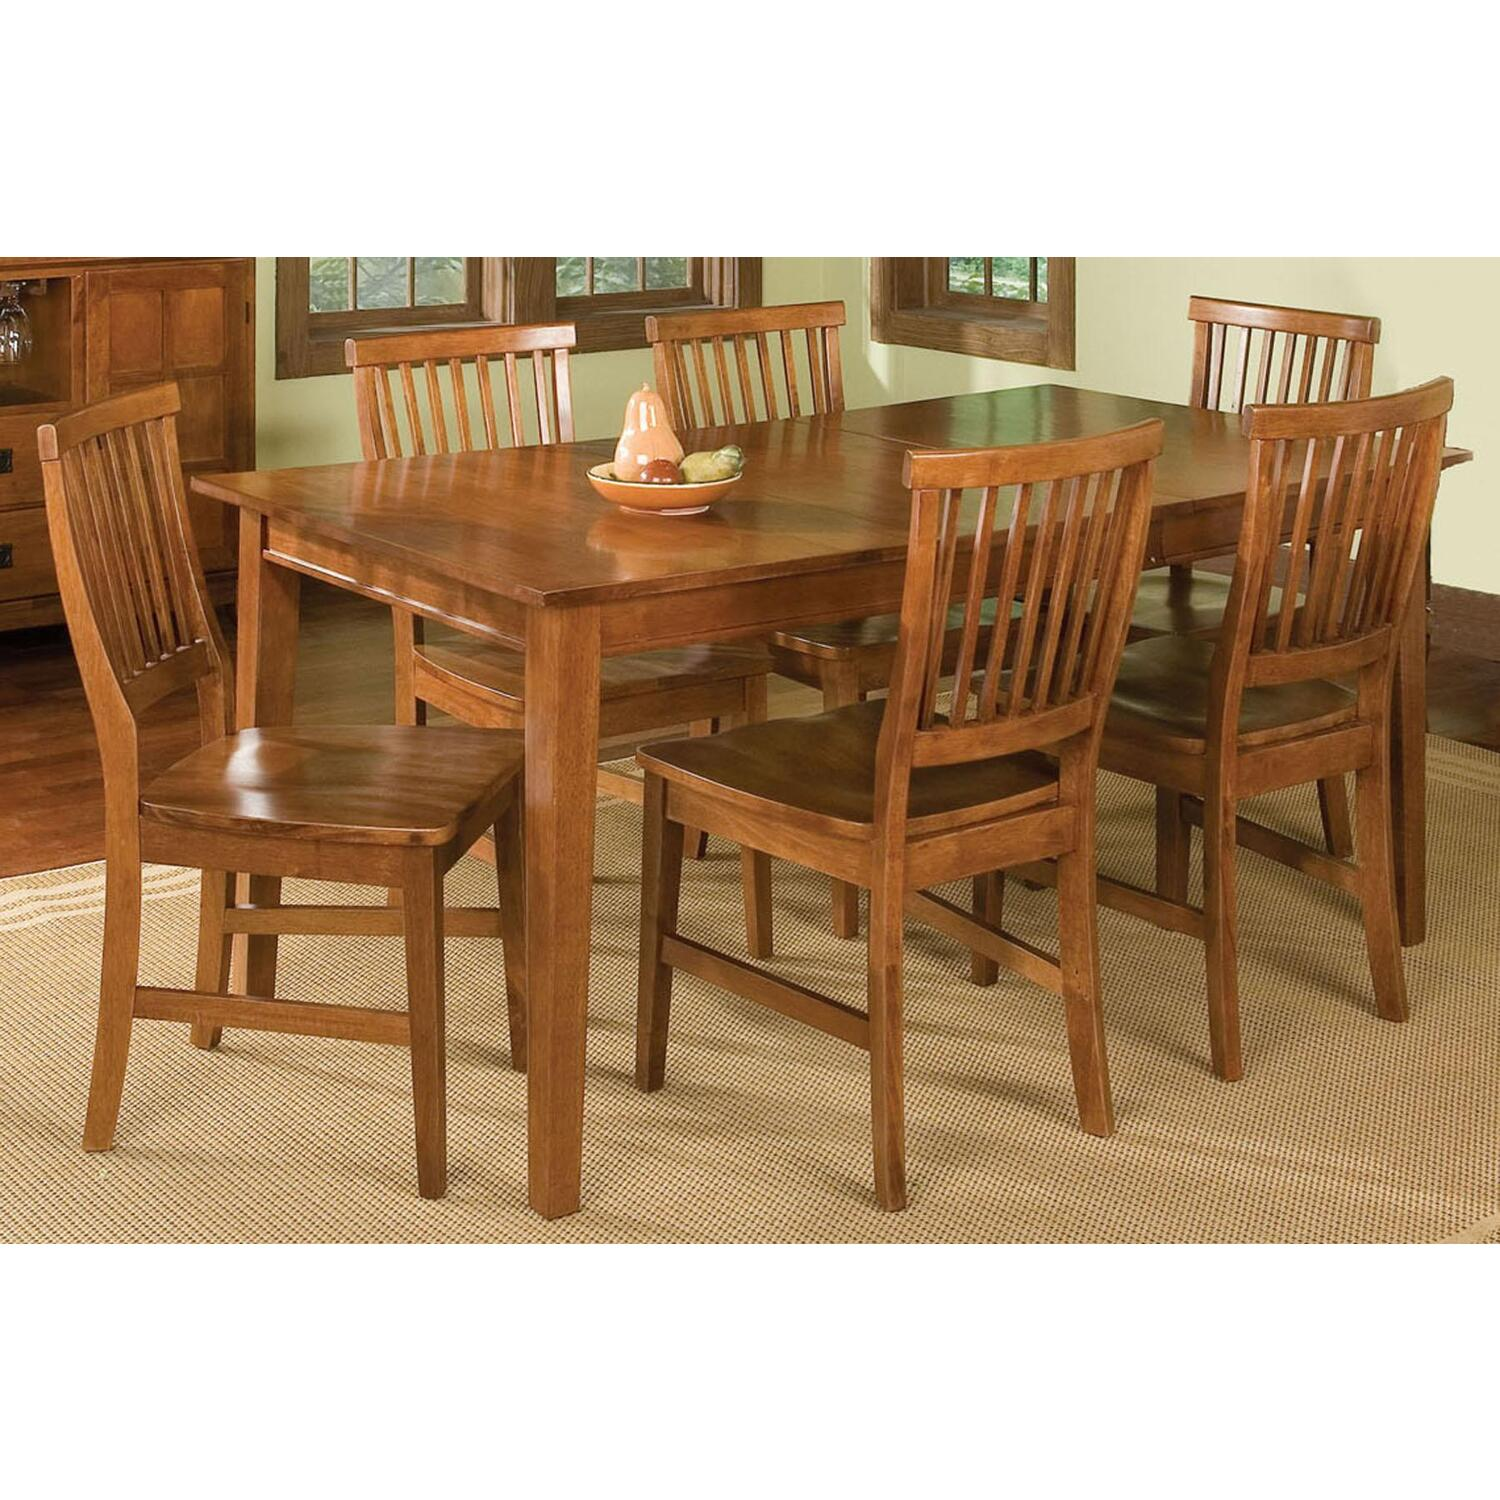 Home Styles 5180-319 Arts And Crafts 7 Piece Dining Set